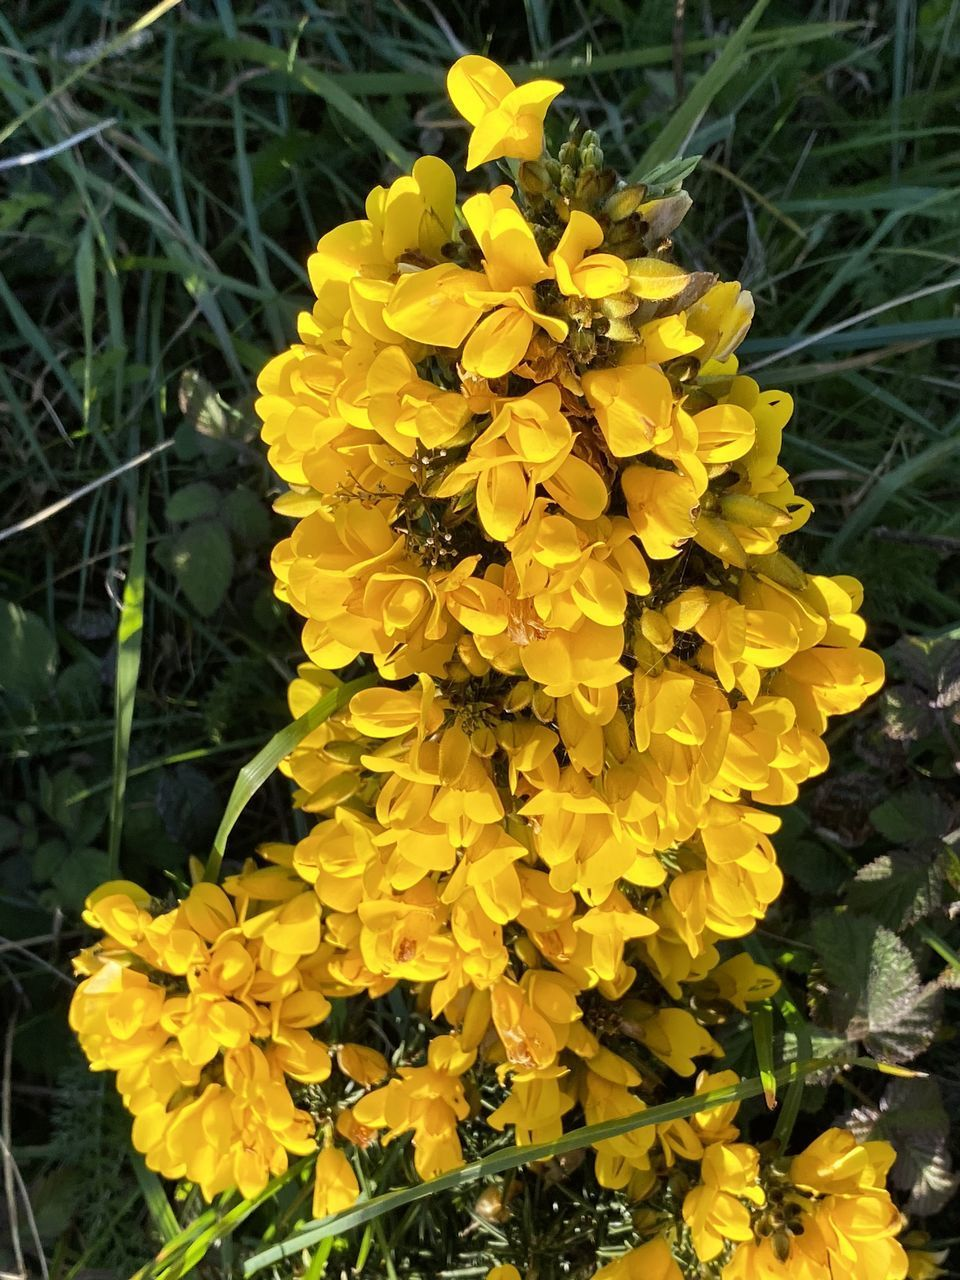 CLOSE-UP OF YELLOW FLOWERING PLANT IN BLOOM